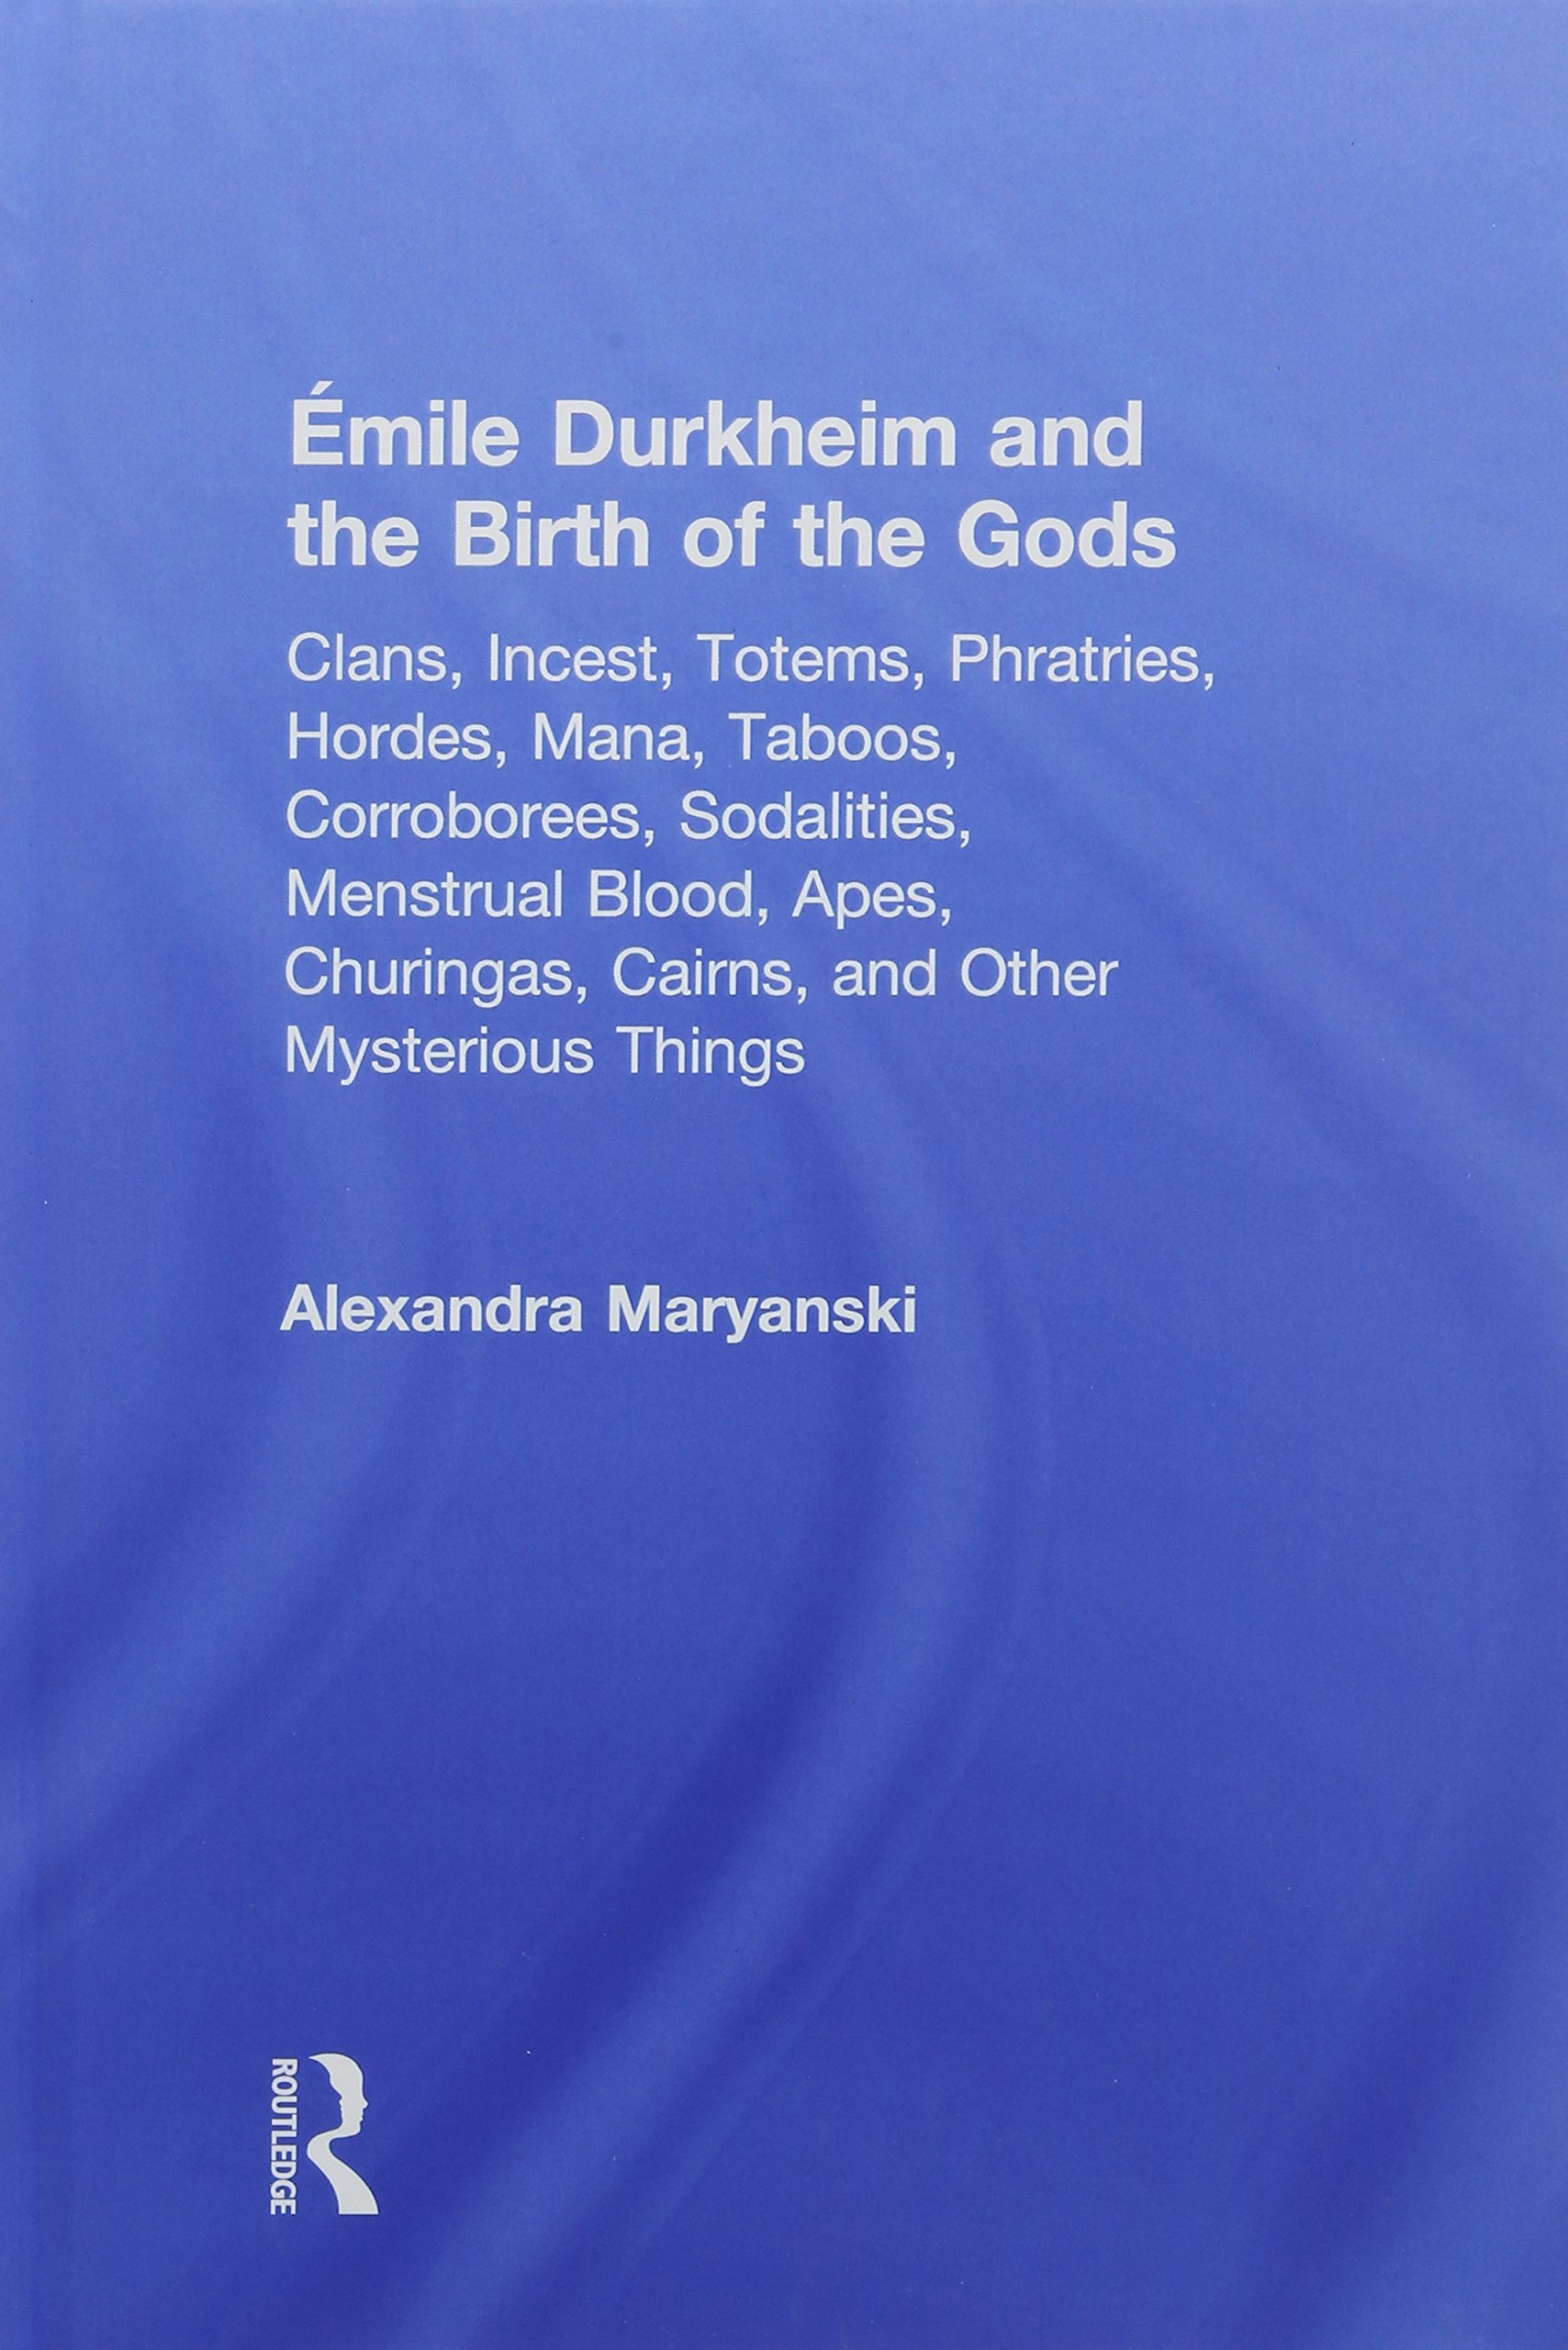 Buy Émile Durkheim and the Birth of the Gods: Clans, Incest